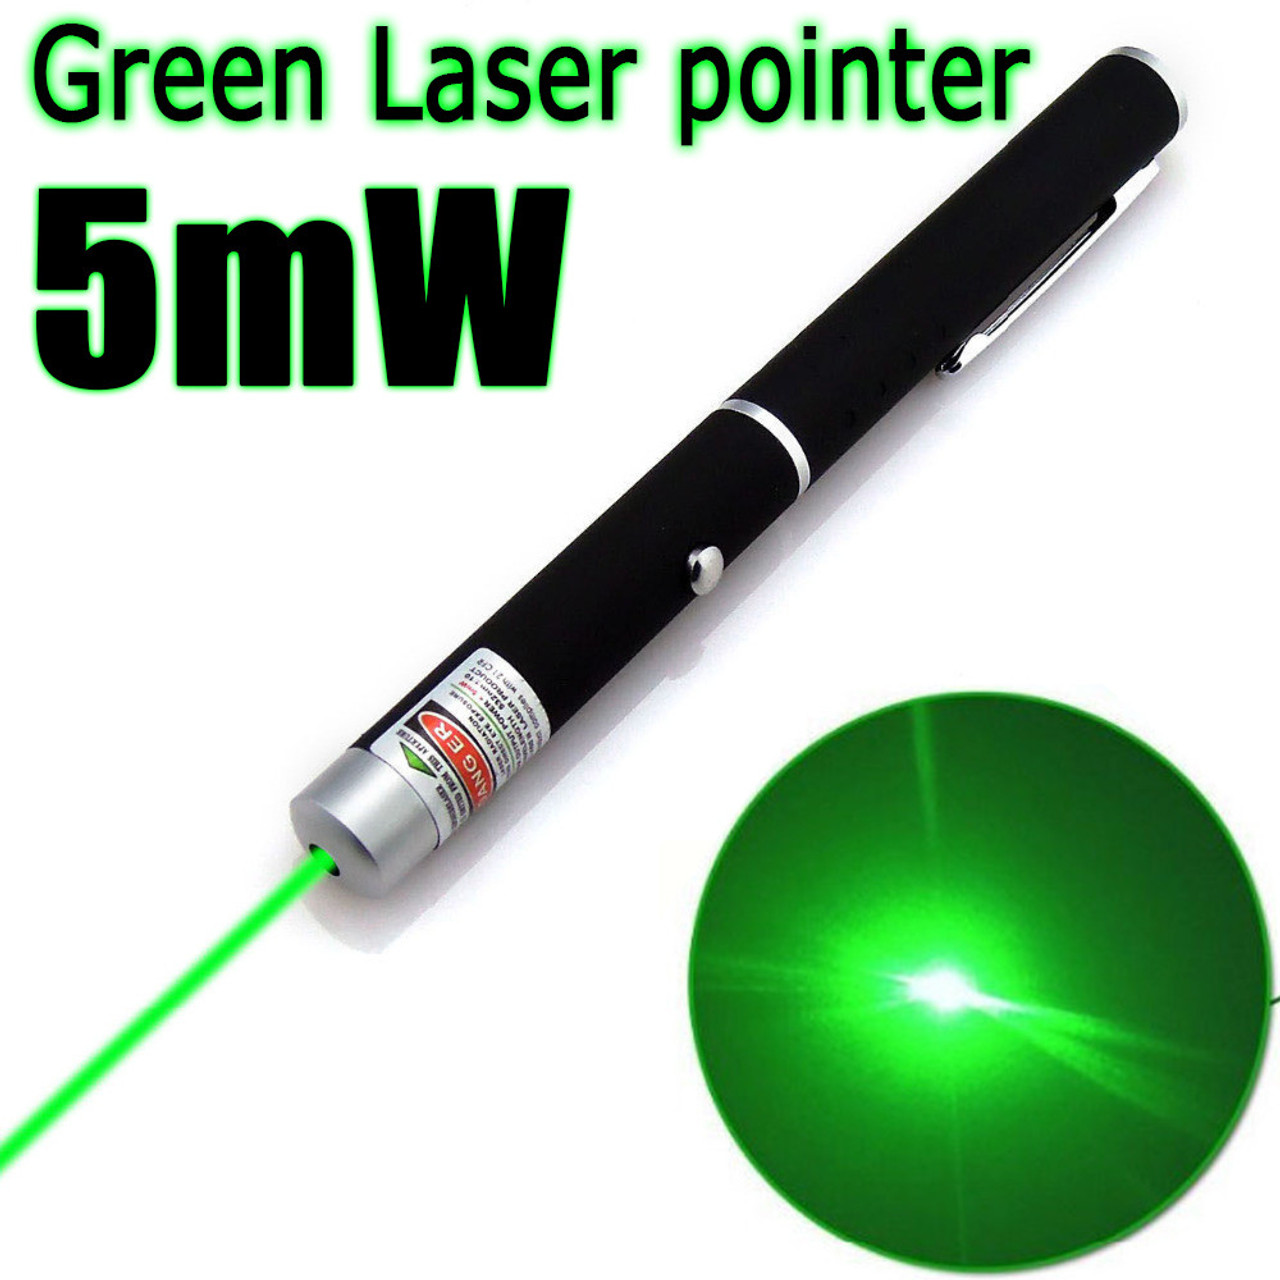 Laser Pointer, Green